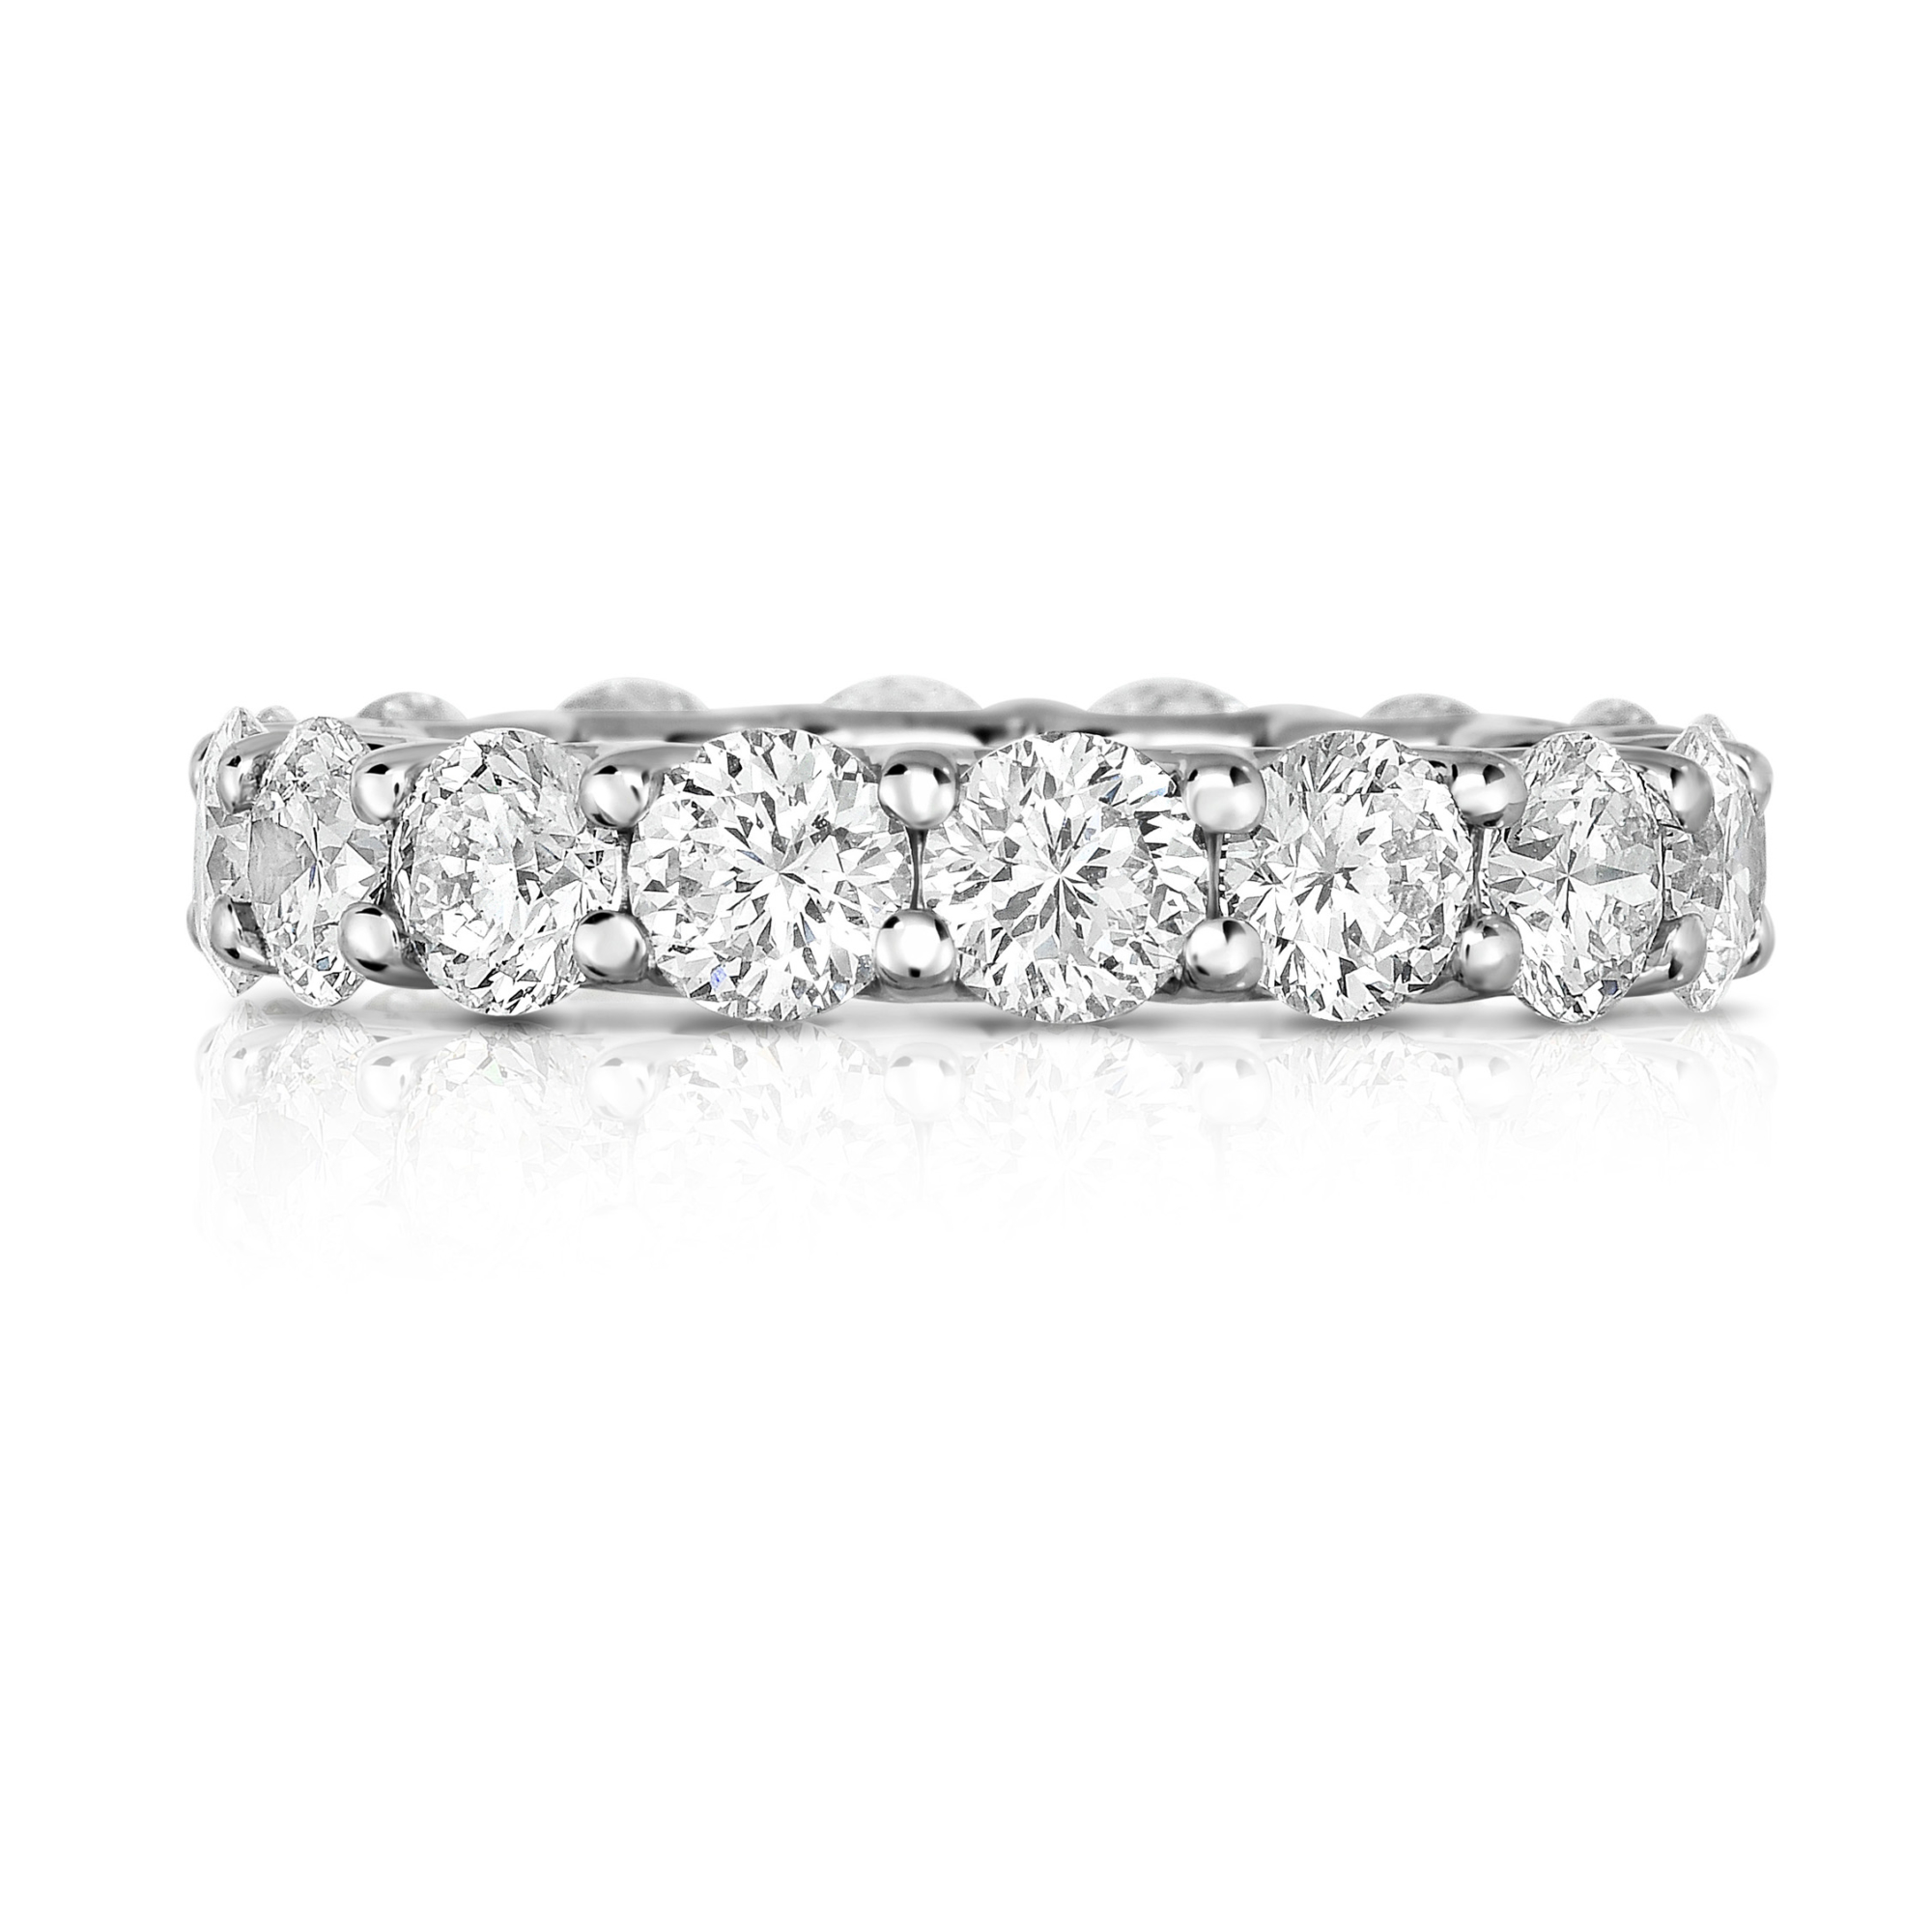 Cento 18K White Gold 4.99cts  Diamonds Gold Ring with Stones 2064W70VF500-301